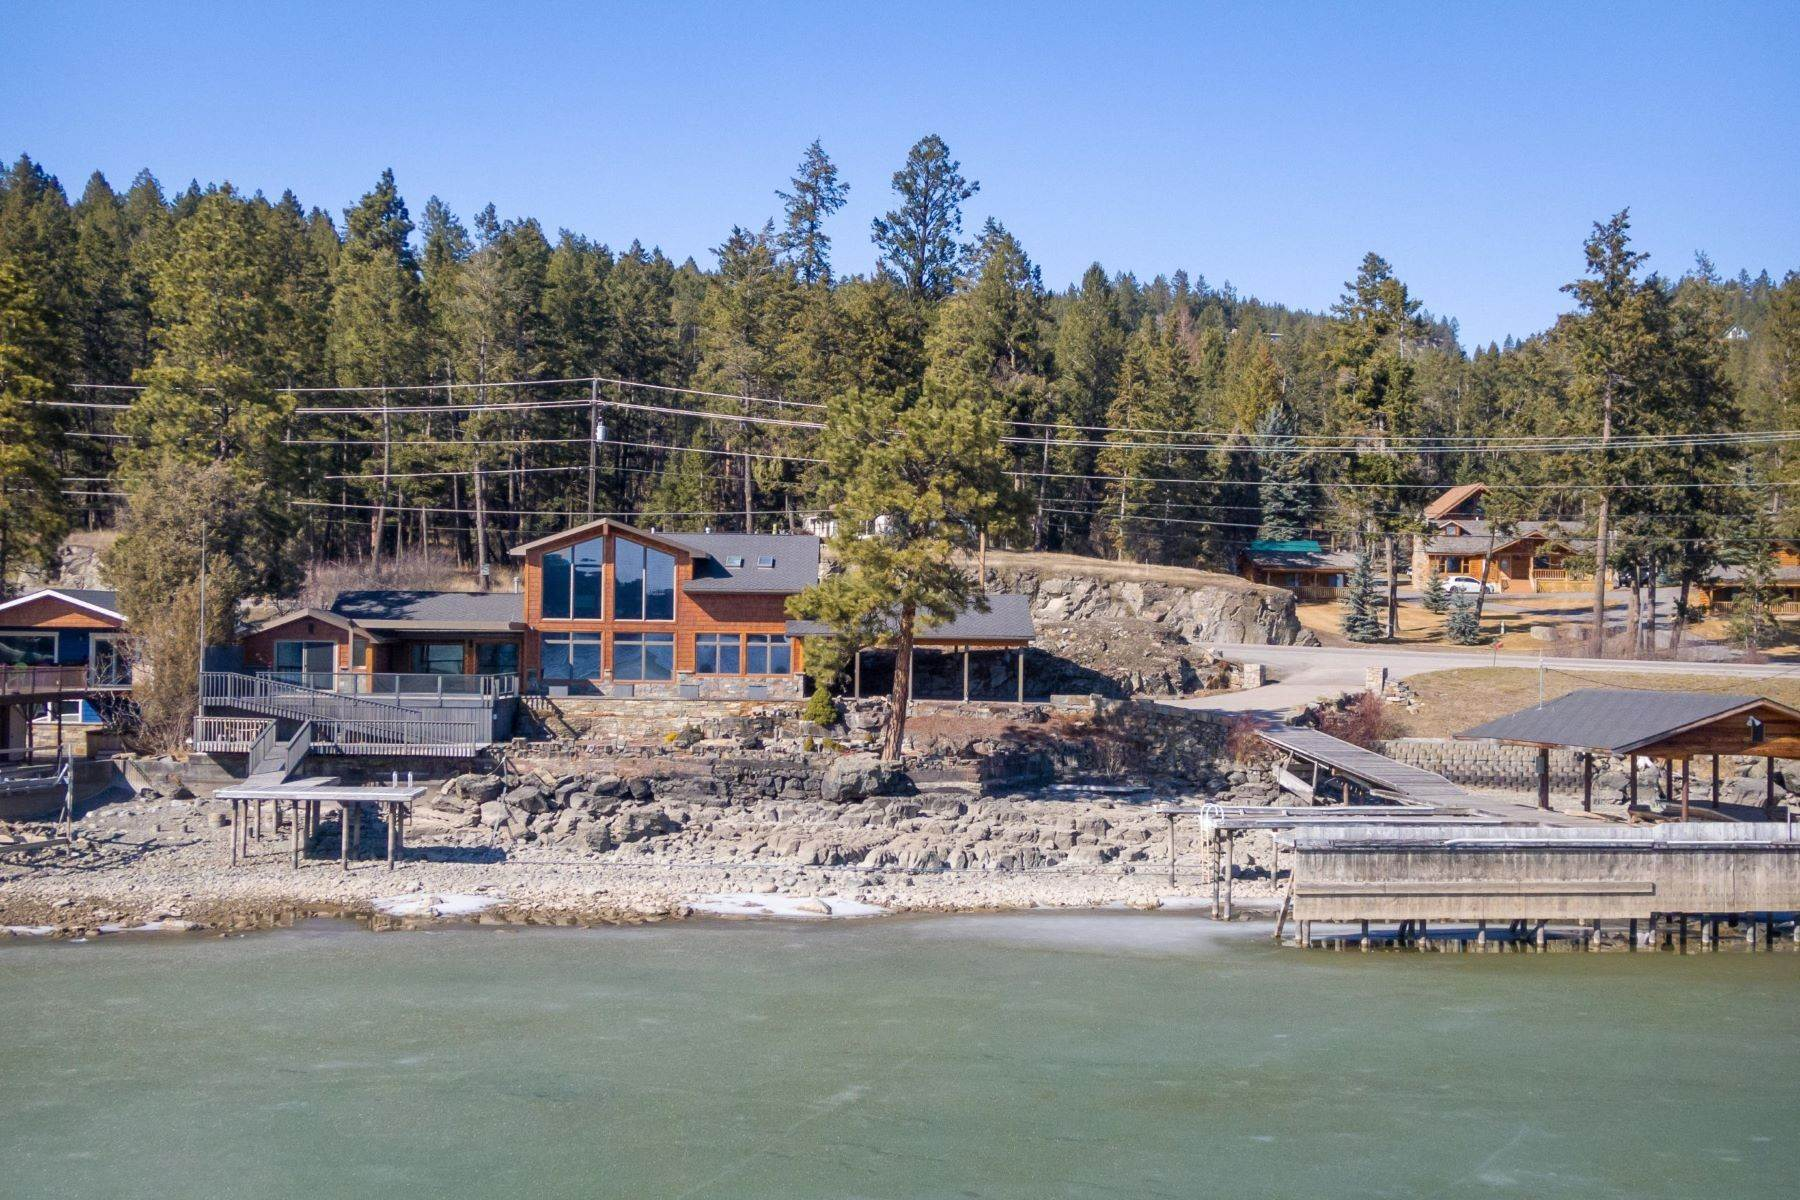 Single Family Homes for Sale at Flathead Lake Living 5505 Us Hwy 93 Somers, Montana 59932 United States